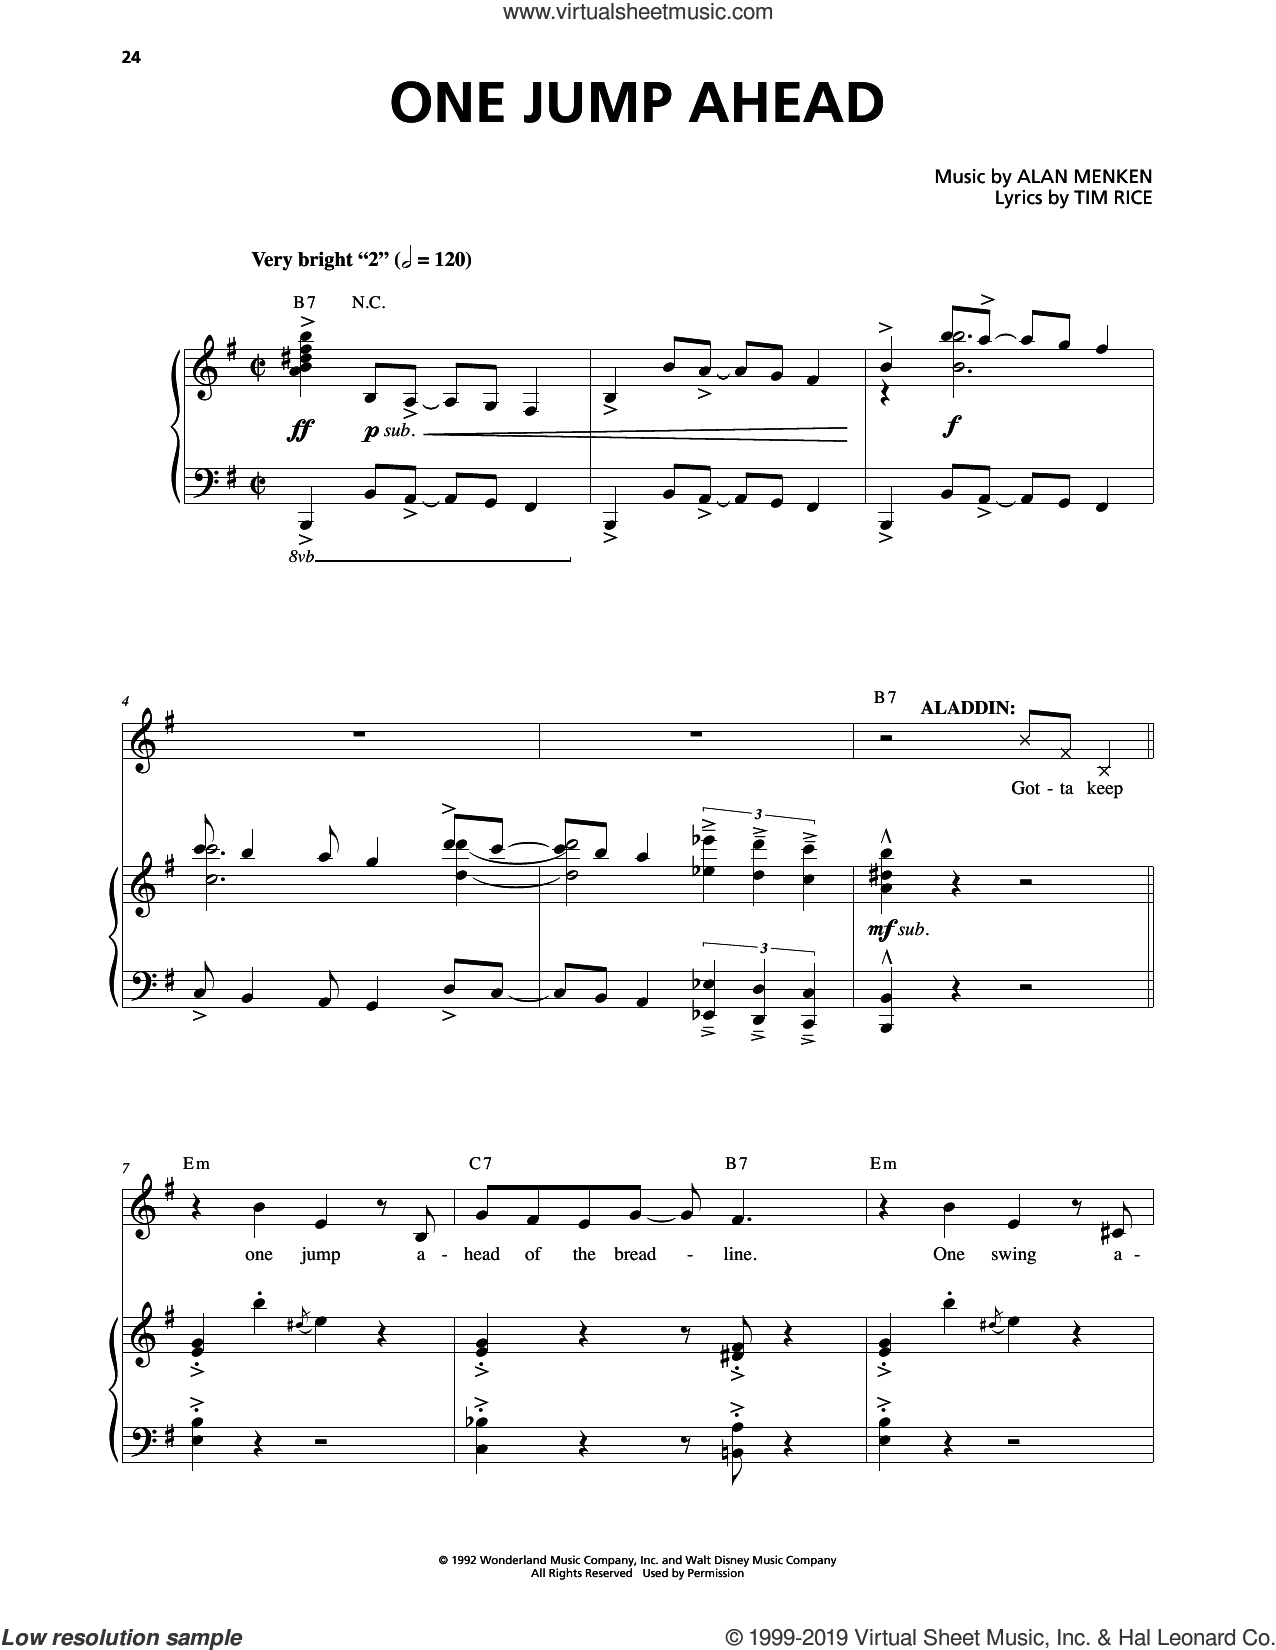 One Jump Ahead (from Aladdin: The Broadway Musical) sheet music for voice and piano by Alan Menken and Tim Rice, intermediate skill level